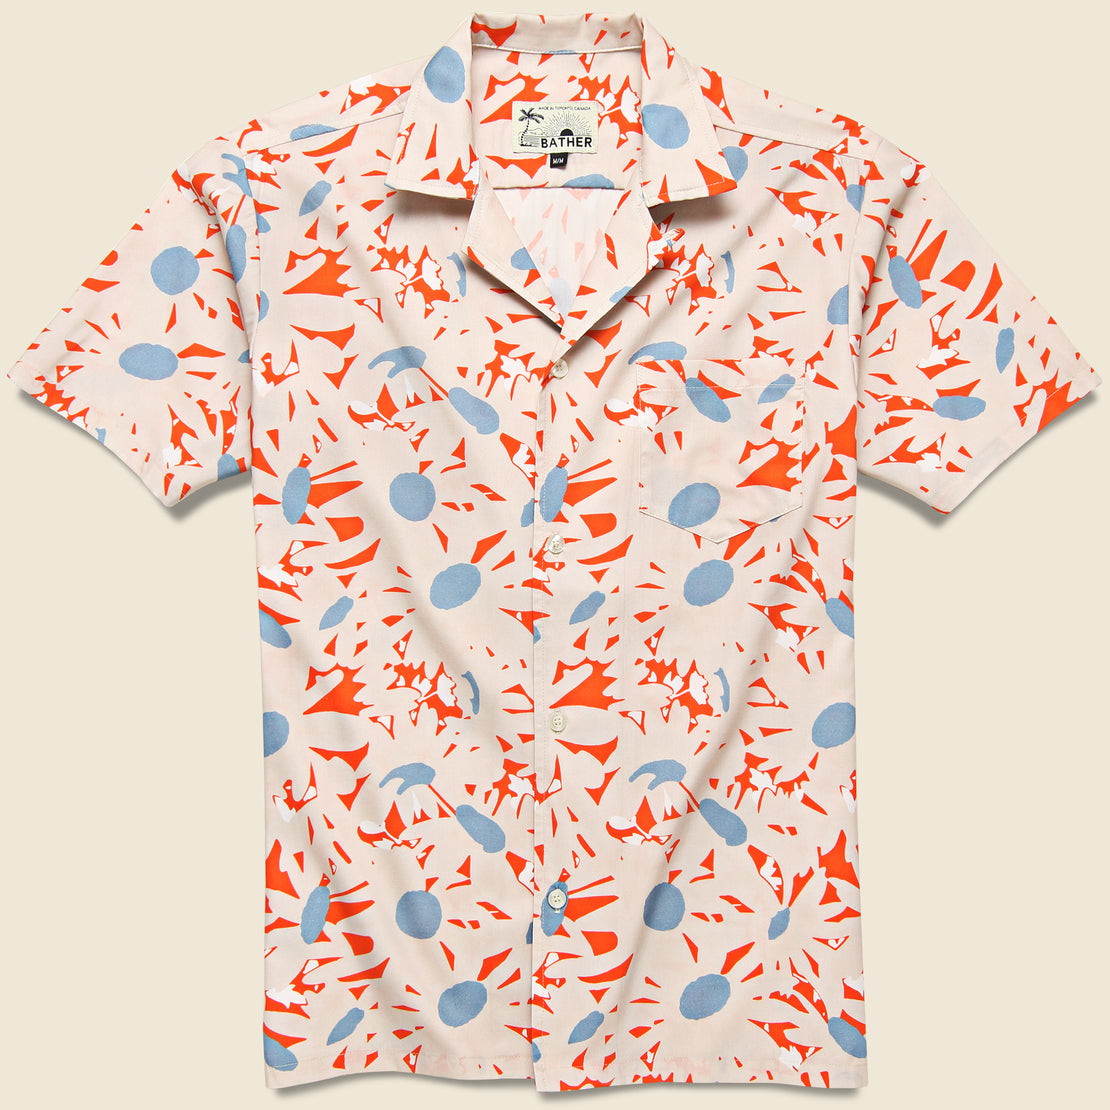 Bather Orange Flowers Shirt - Orange/White